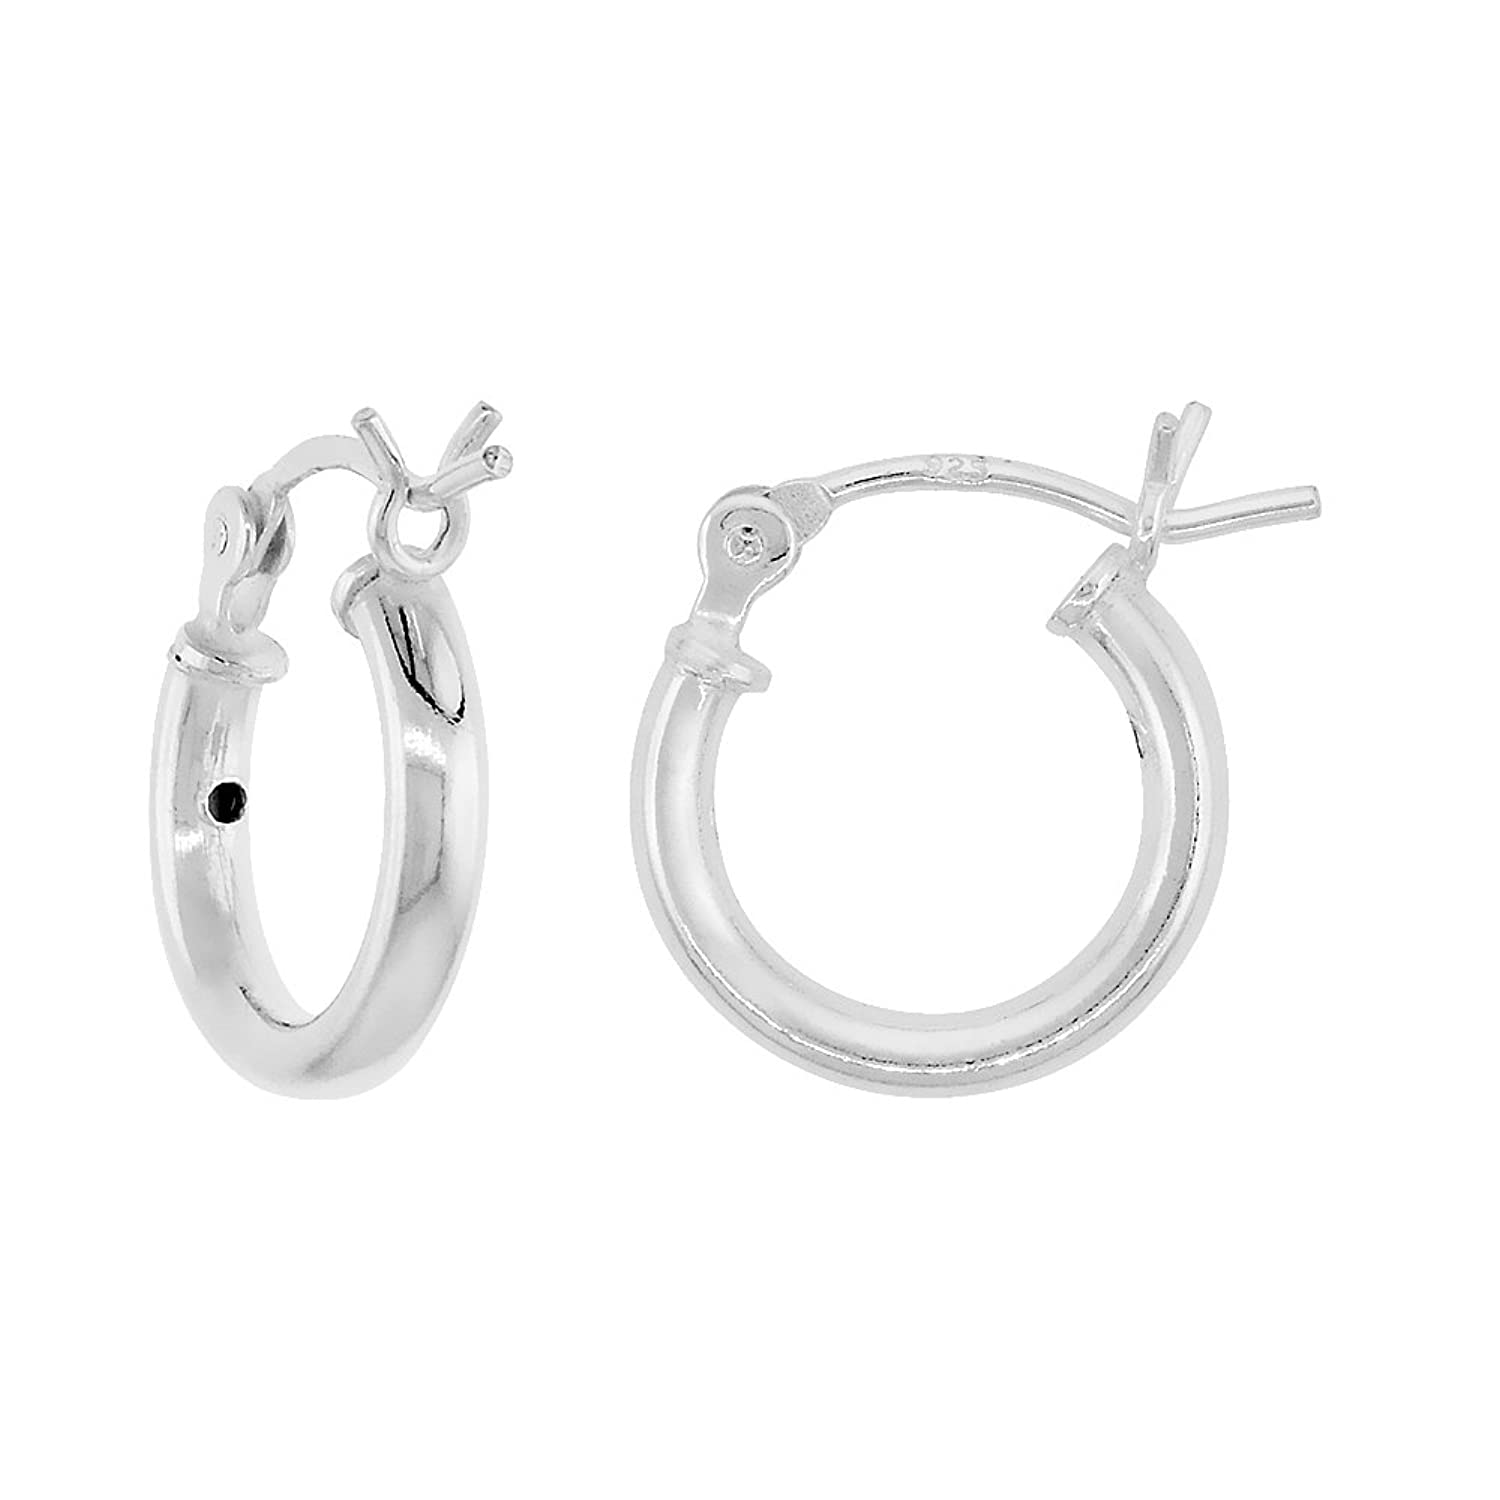 Tiny Sterling Silver Small Tube Hoop Earrings with Post-Snap Closure 2mm thick 1/2 inch round